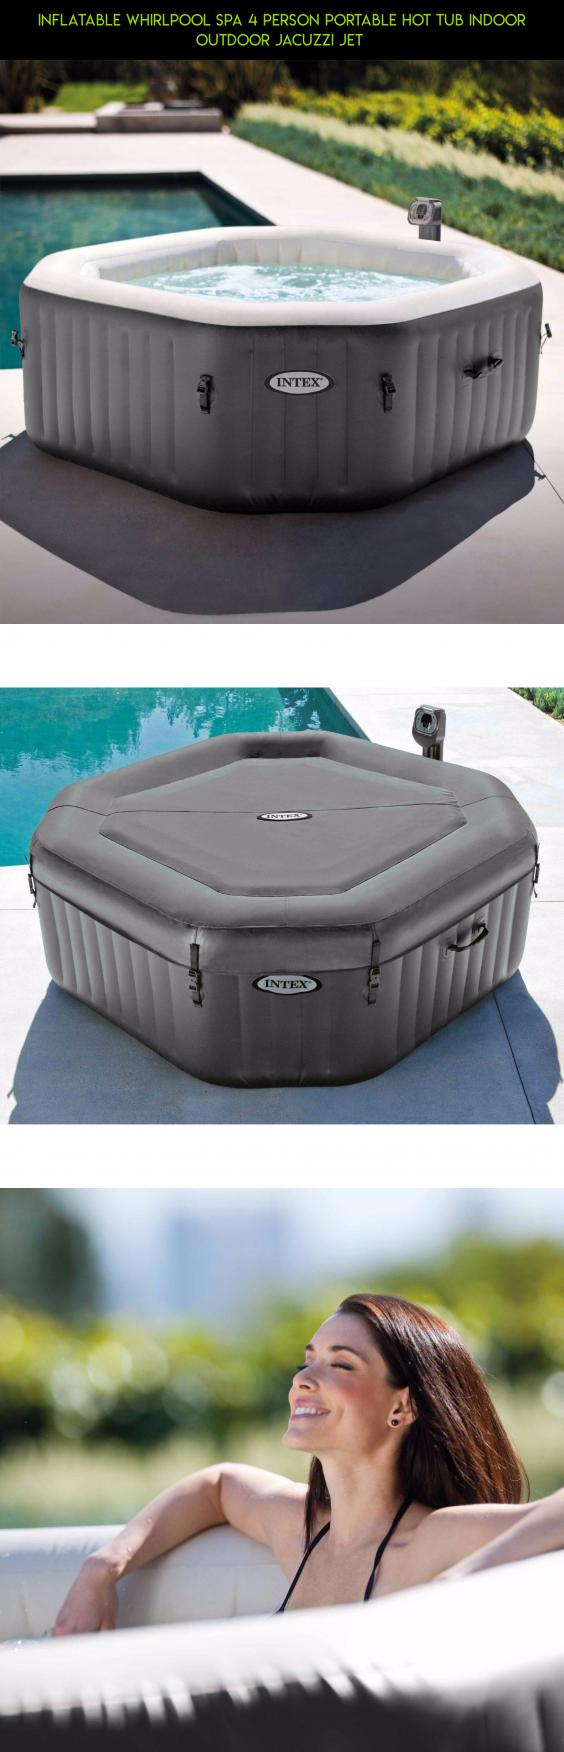 Inflatable Whirlpool Spa 4 Person Portable Hot Tub Indoor Outdoor ...